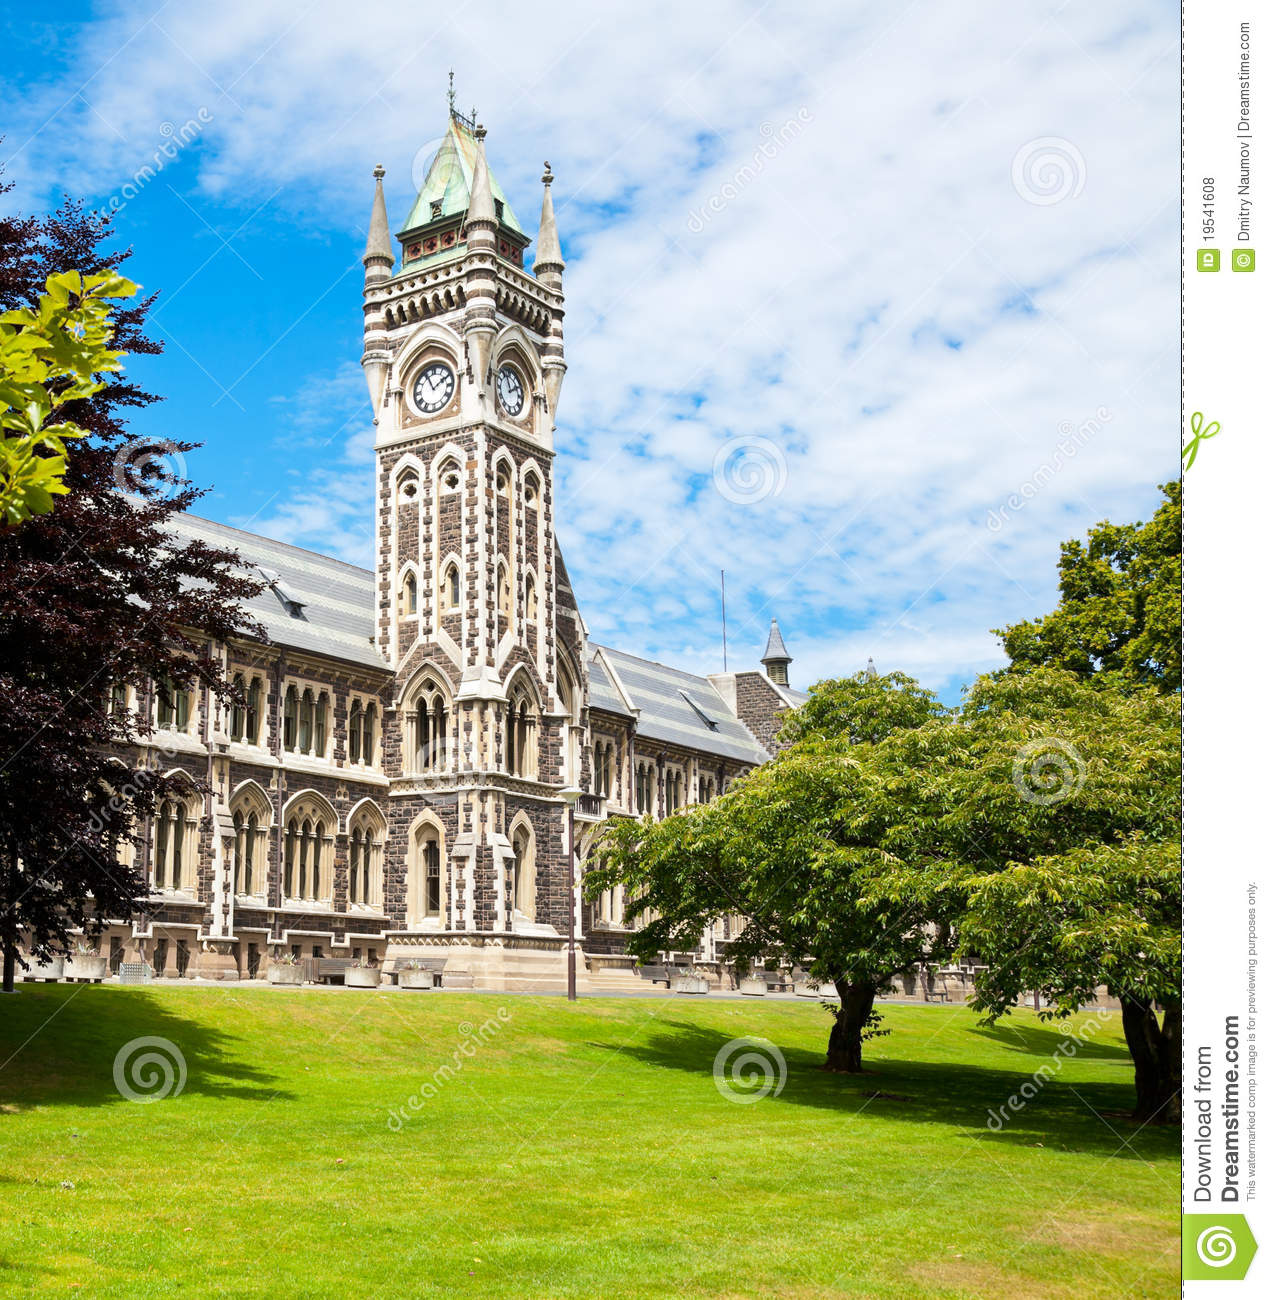 university of otago - photo #9